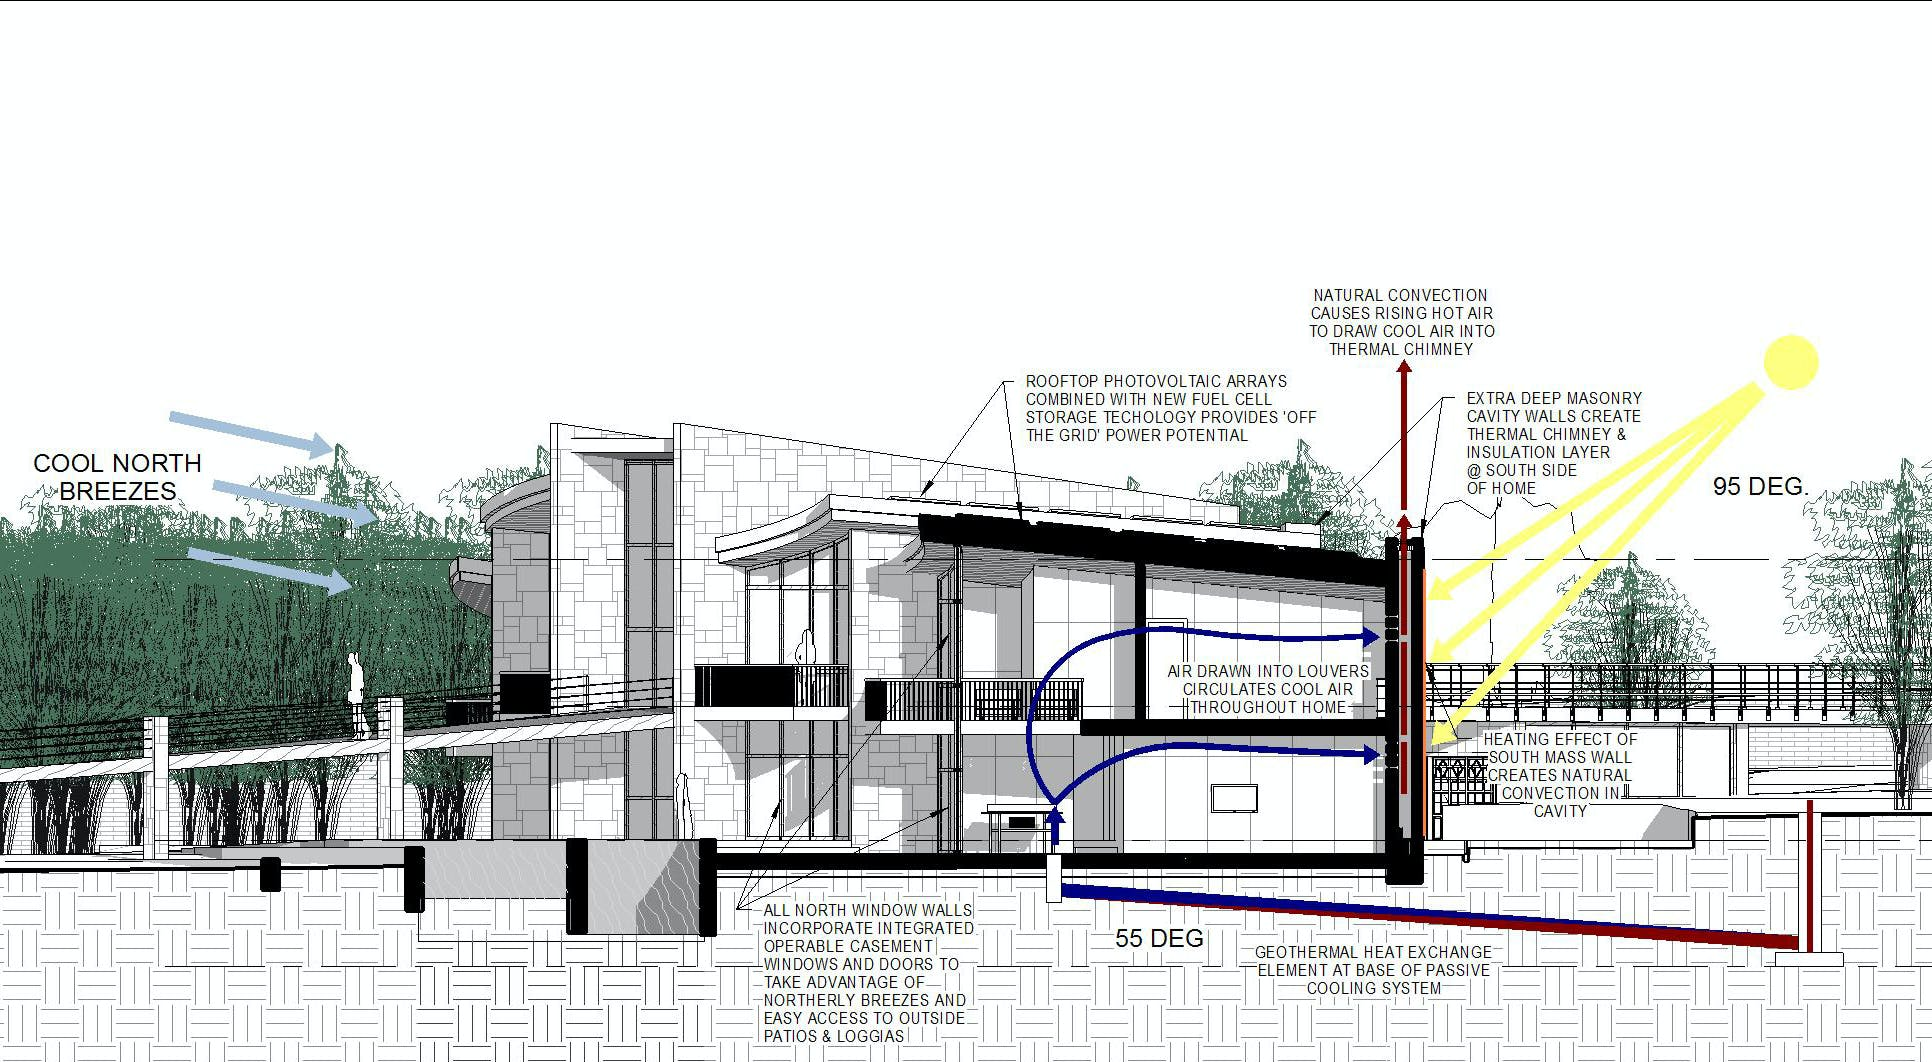 39 off grid 39 custum home design proposal ray everett for The design home